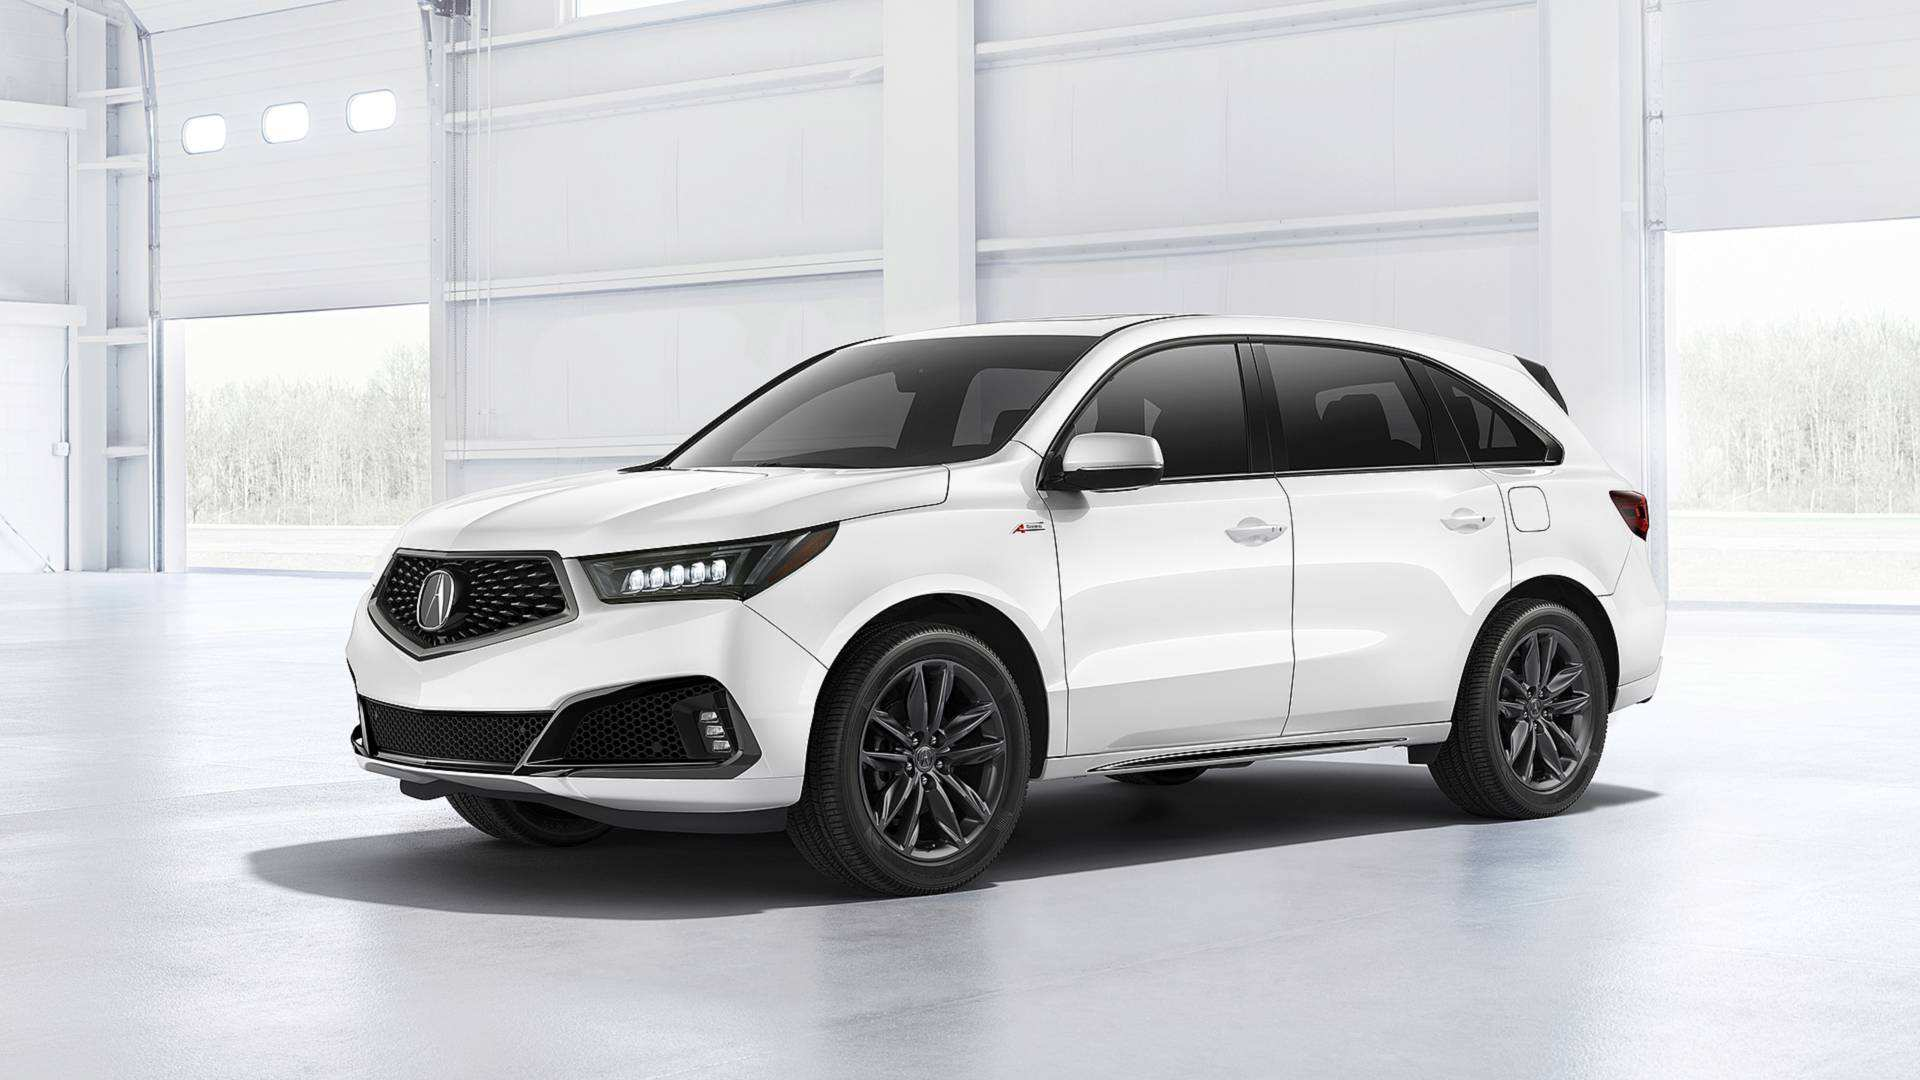 44 New 2020 Acura Mdx Body Change Overview